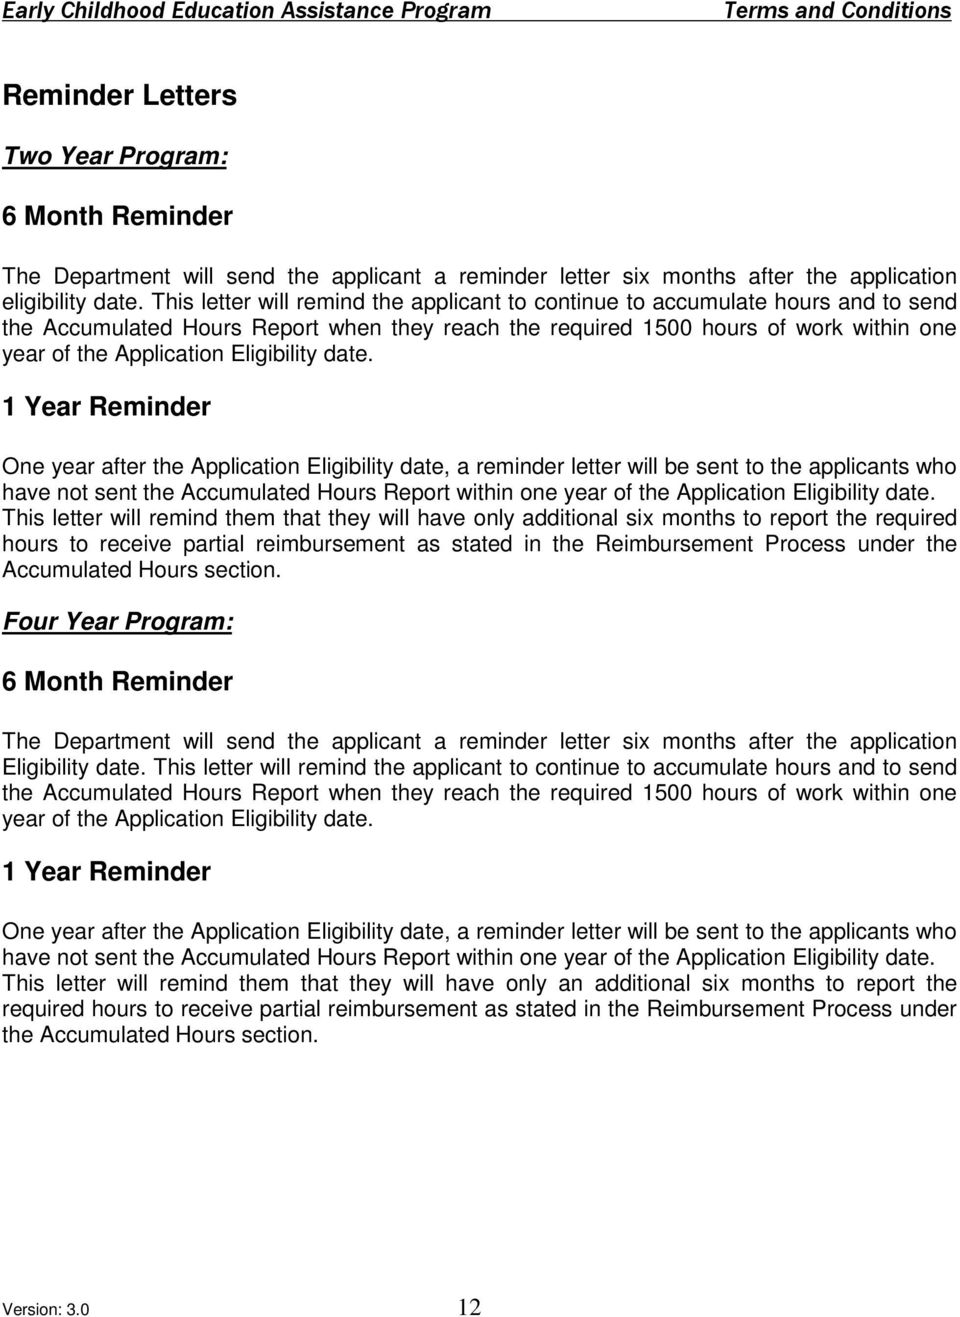 1 Year Reminder One year after the Applicatin Eligibility date, a reminder letter will be sent t the applicants wh have nt sent the Accumulated Hurs Reprt within ne year f the Applicatin Eligibility